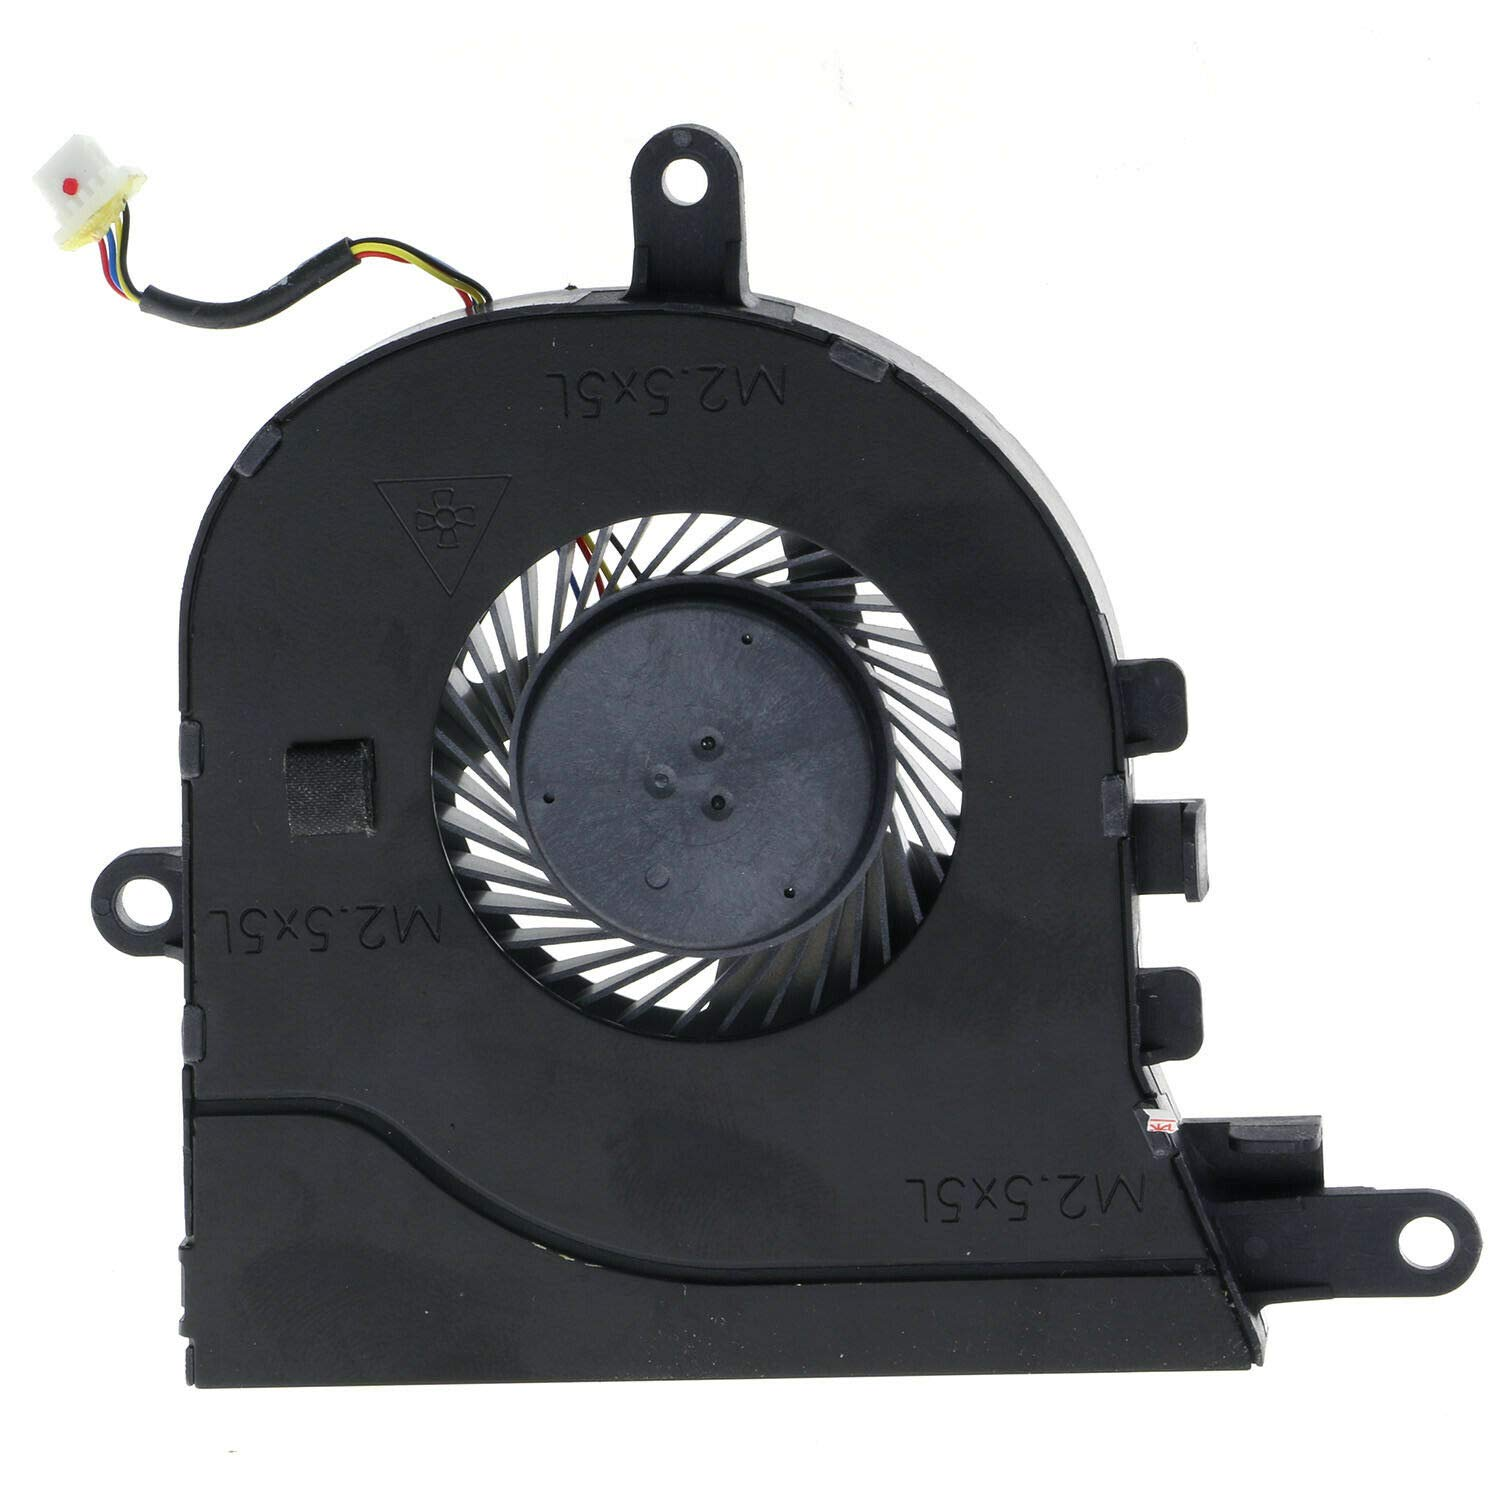 HK-PART Replacement Fan for Dell Latitude 3590 Inspiron 15 5570 5575 Cooling Fan NPFW6 CN-0NPFW6 0NPFW6 4-Wire